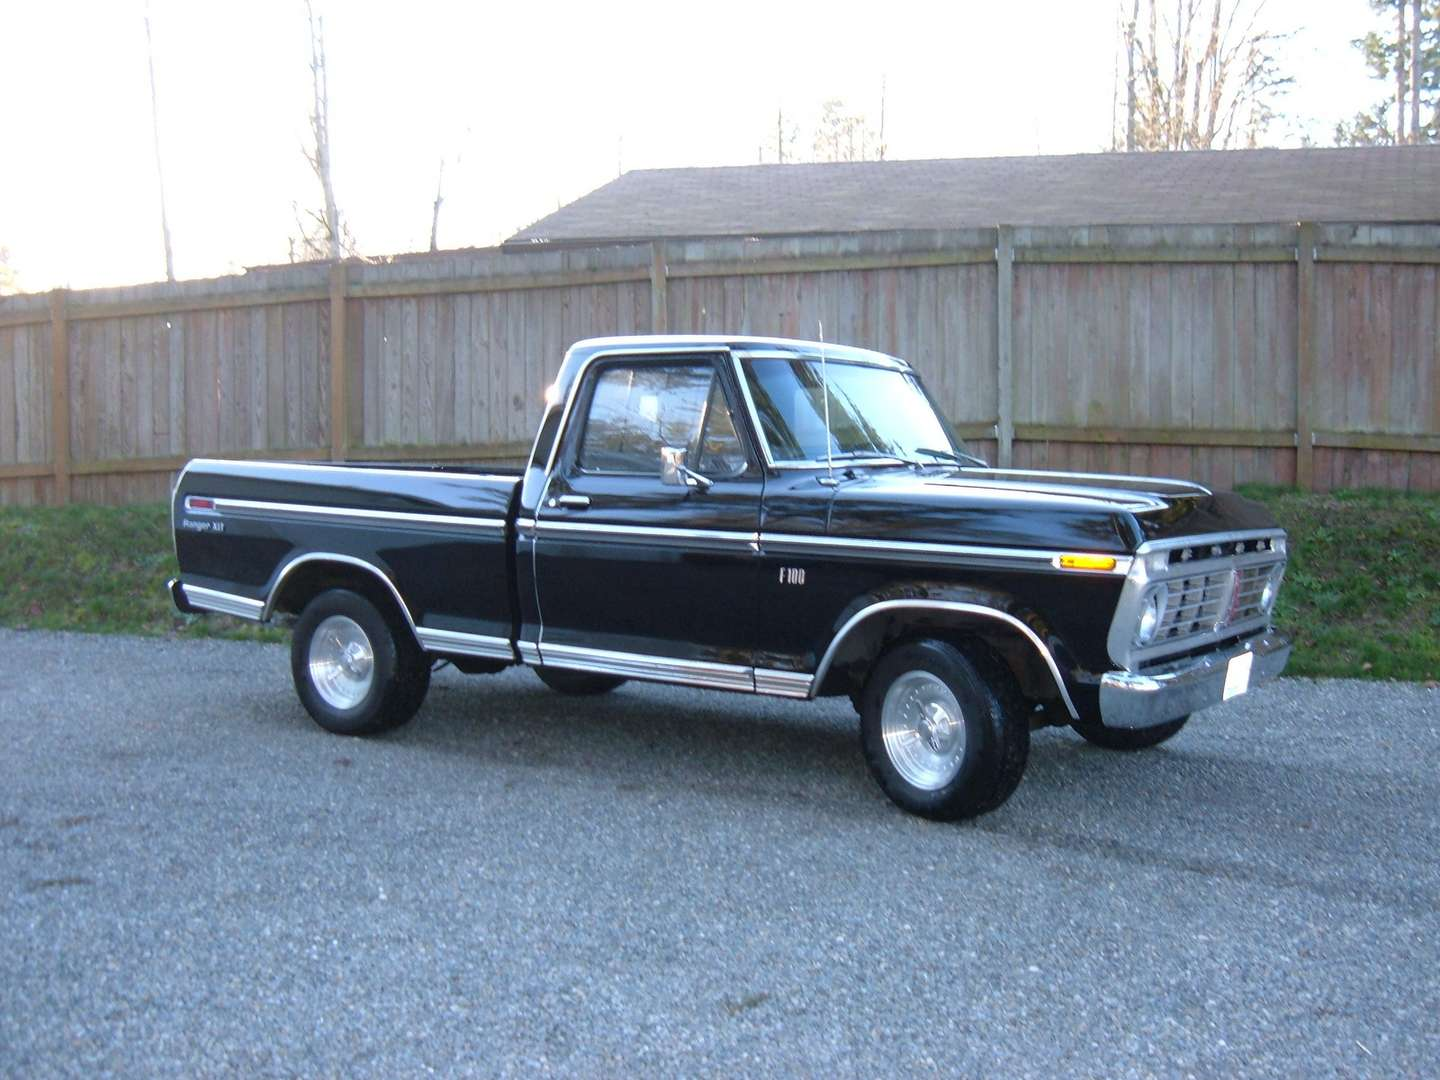 Ford F100 #8922124